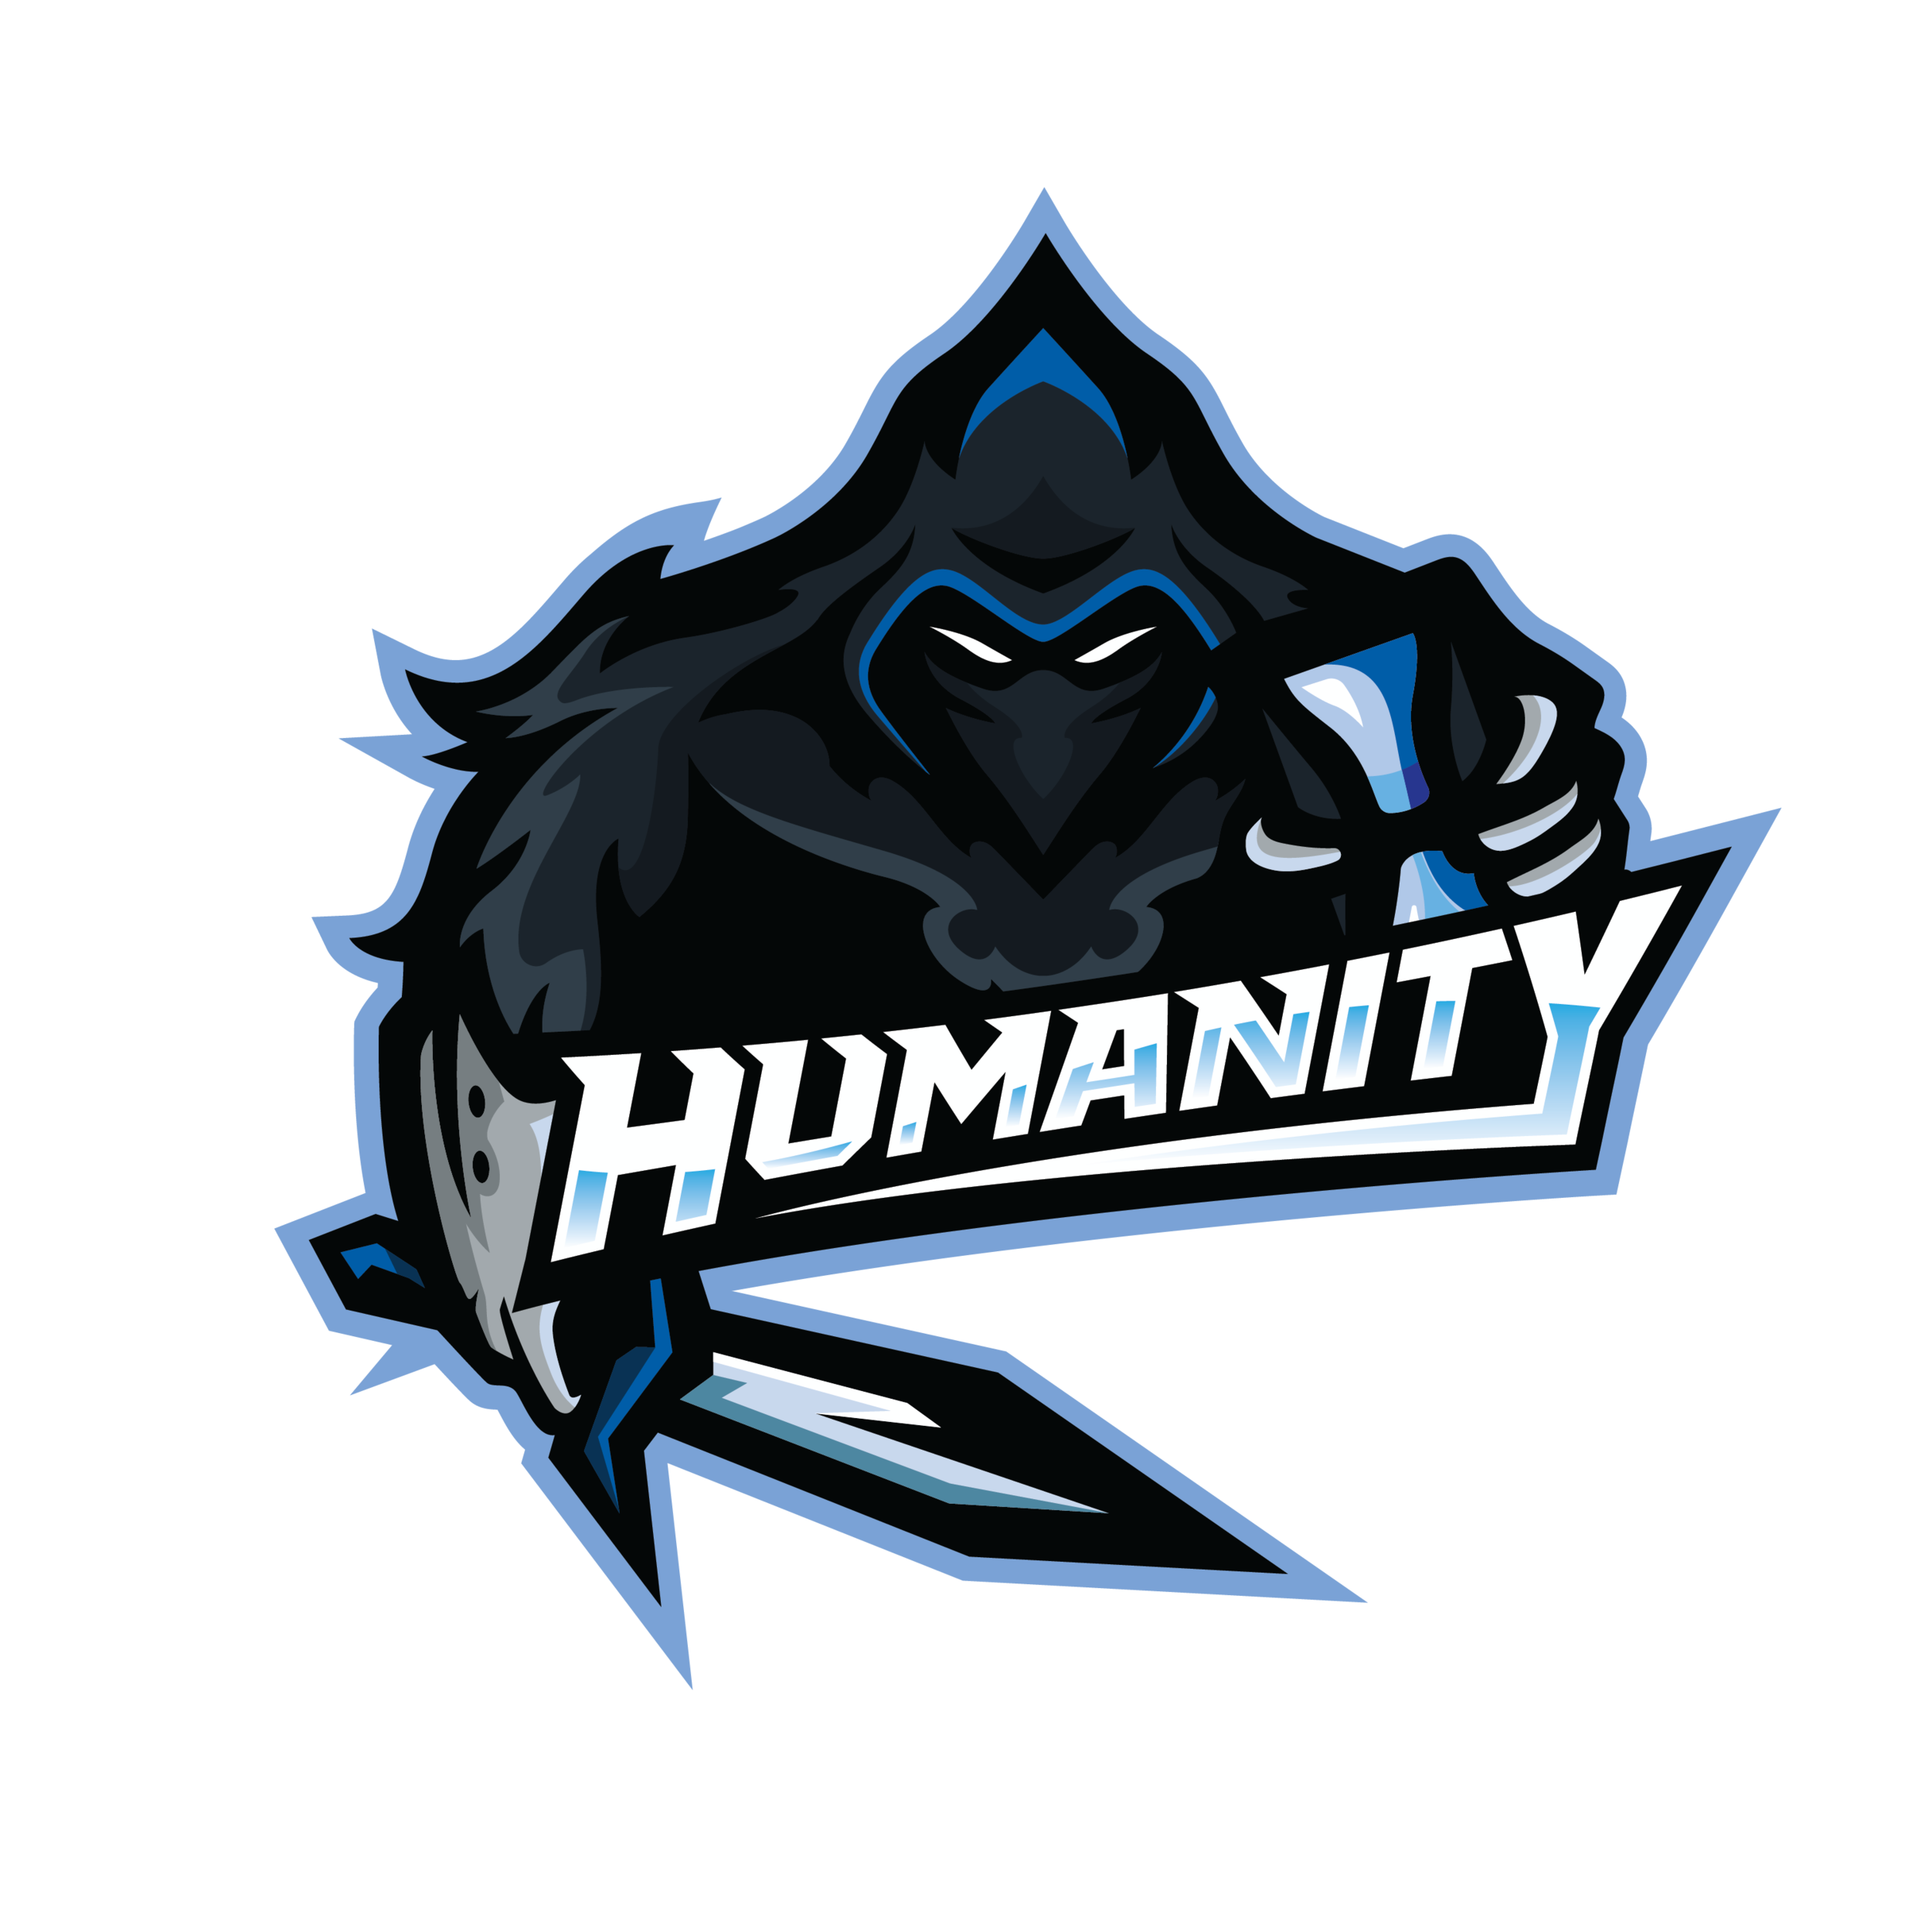 Logo + Text@2x - Devin Herbst.png